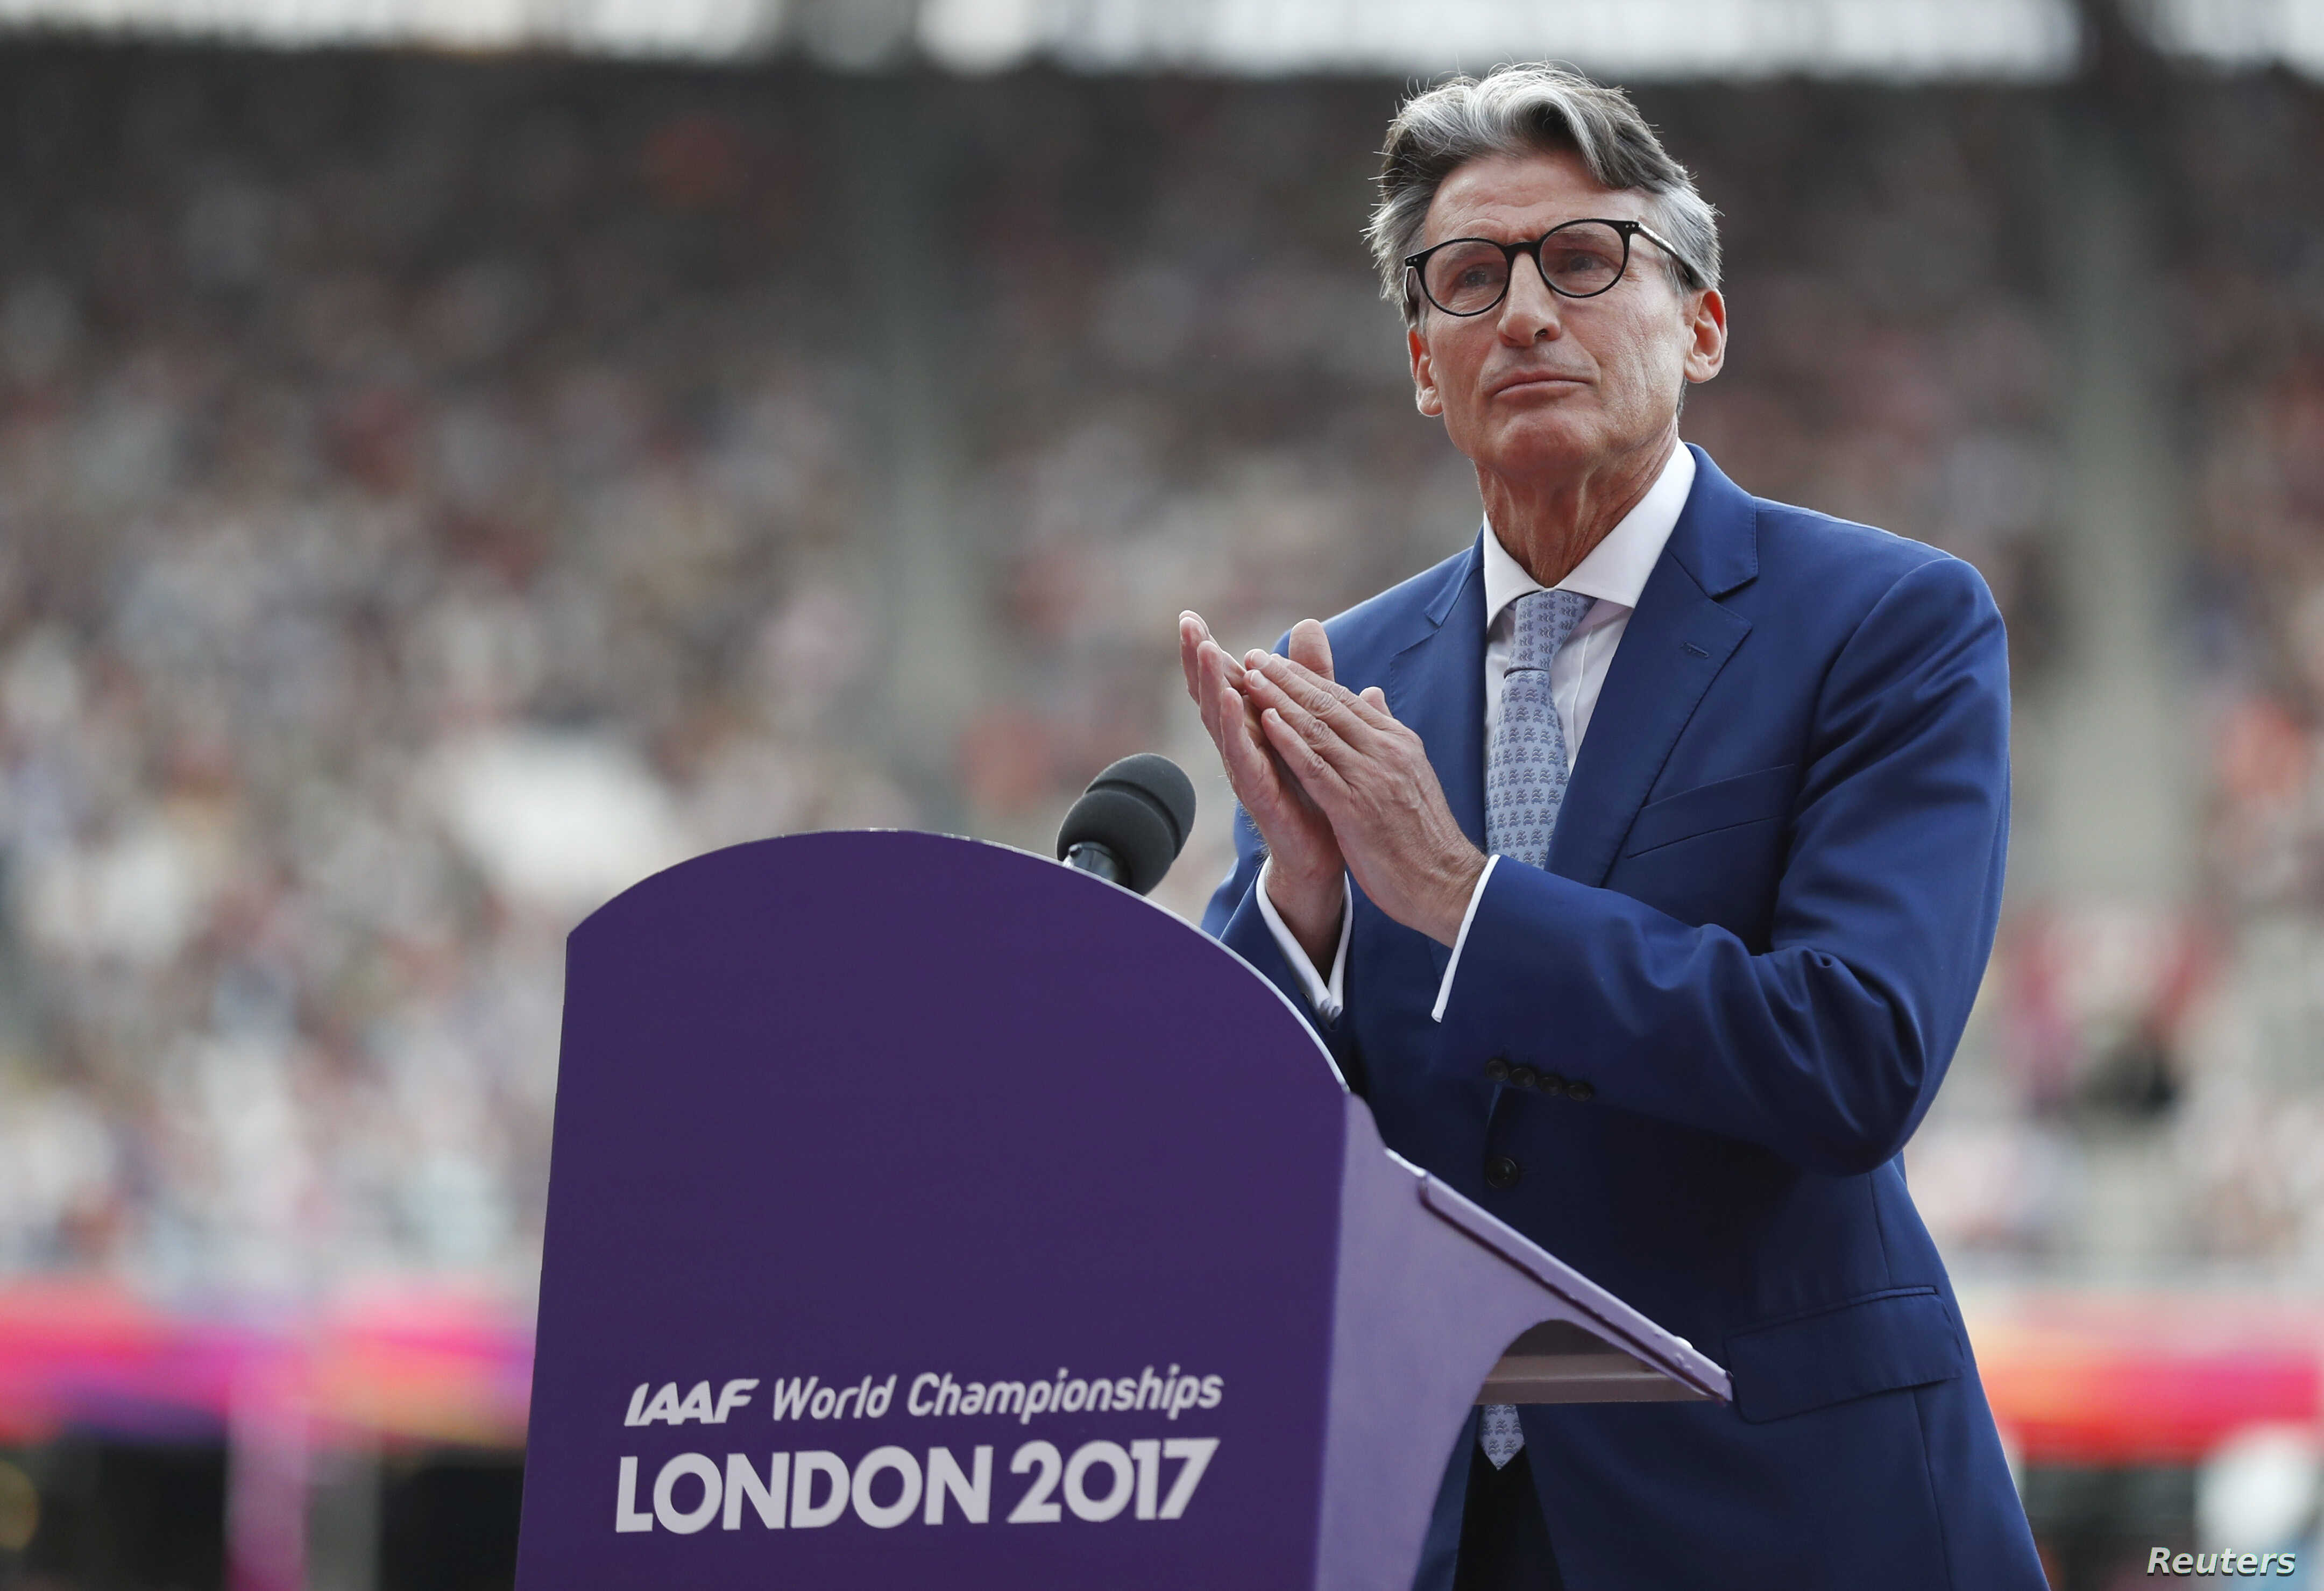 President of the International Association of Athletics Federations Sebastian Coe delivers a speech during the opening ceremony in London of the World Athletics Championships, Aug. 4, 2017.